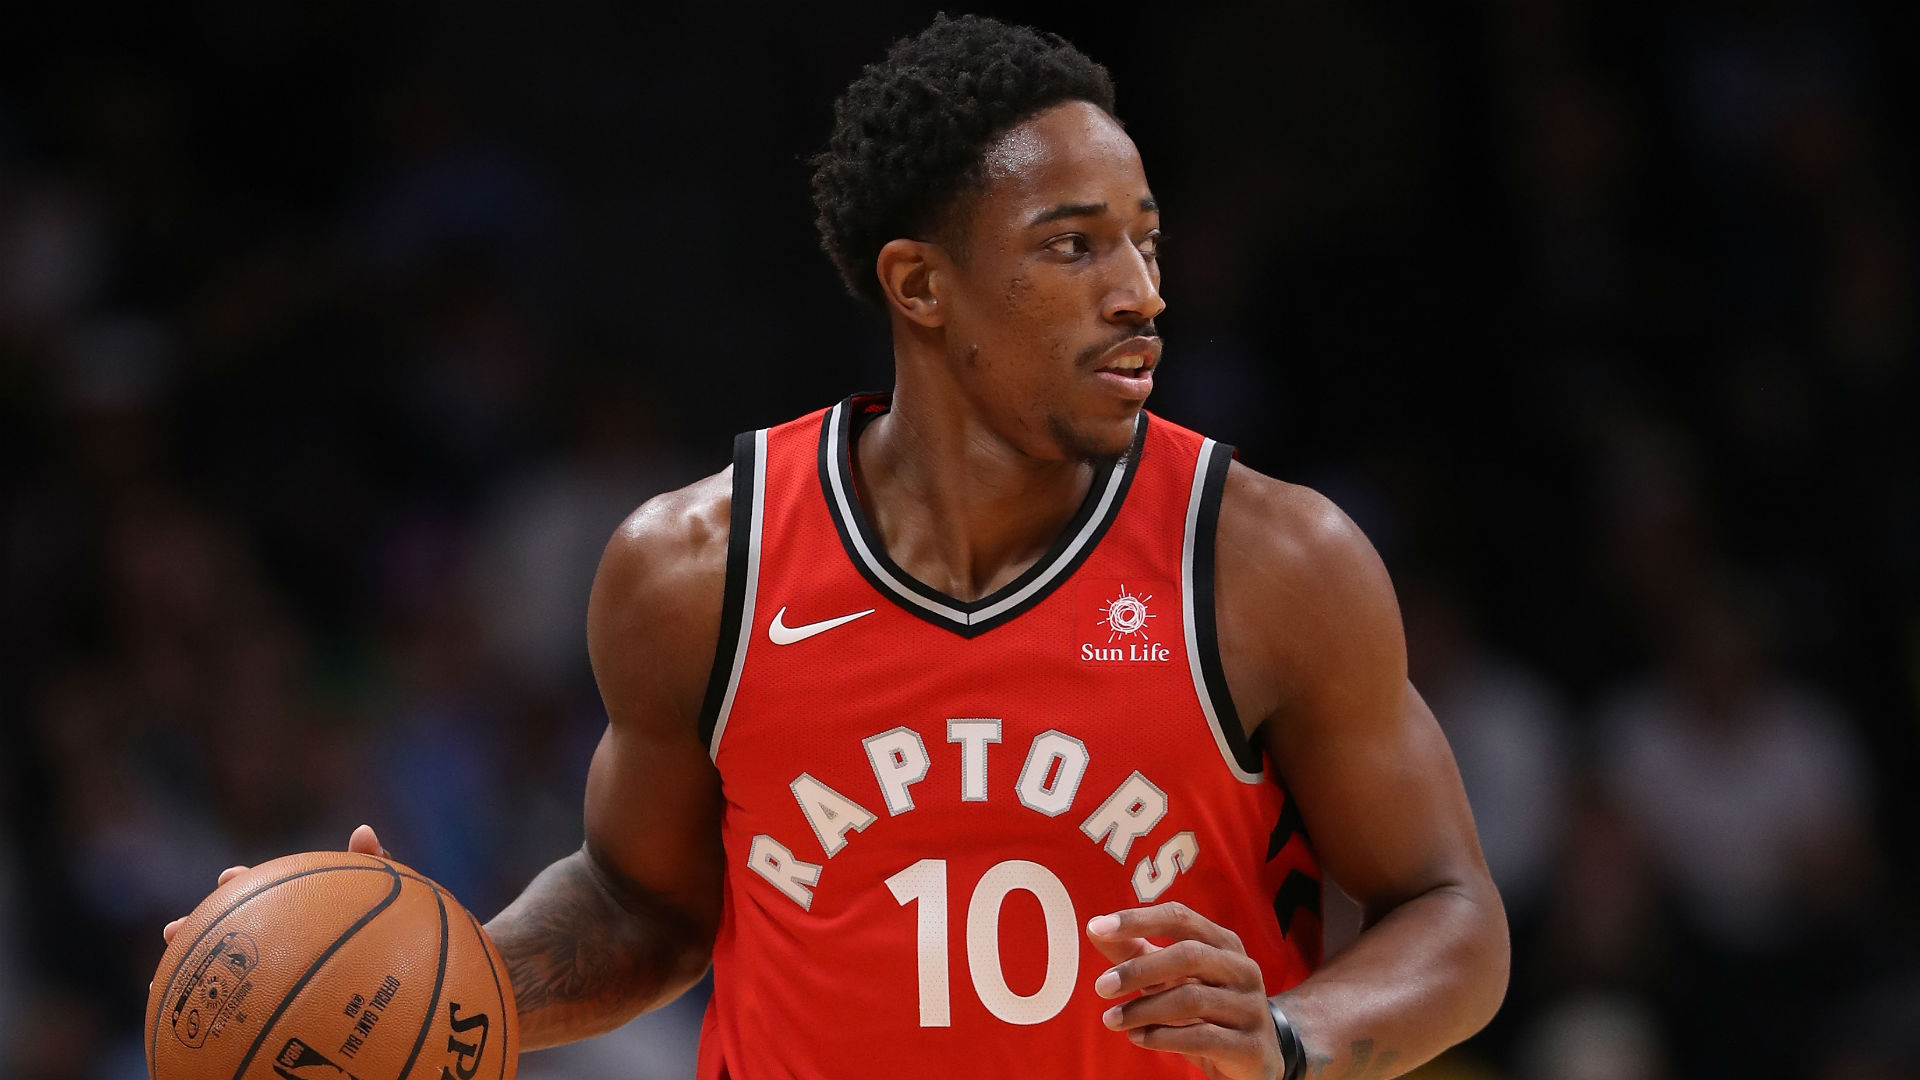 Raptors hope to overcome history vs. Wizards